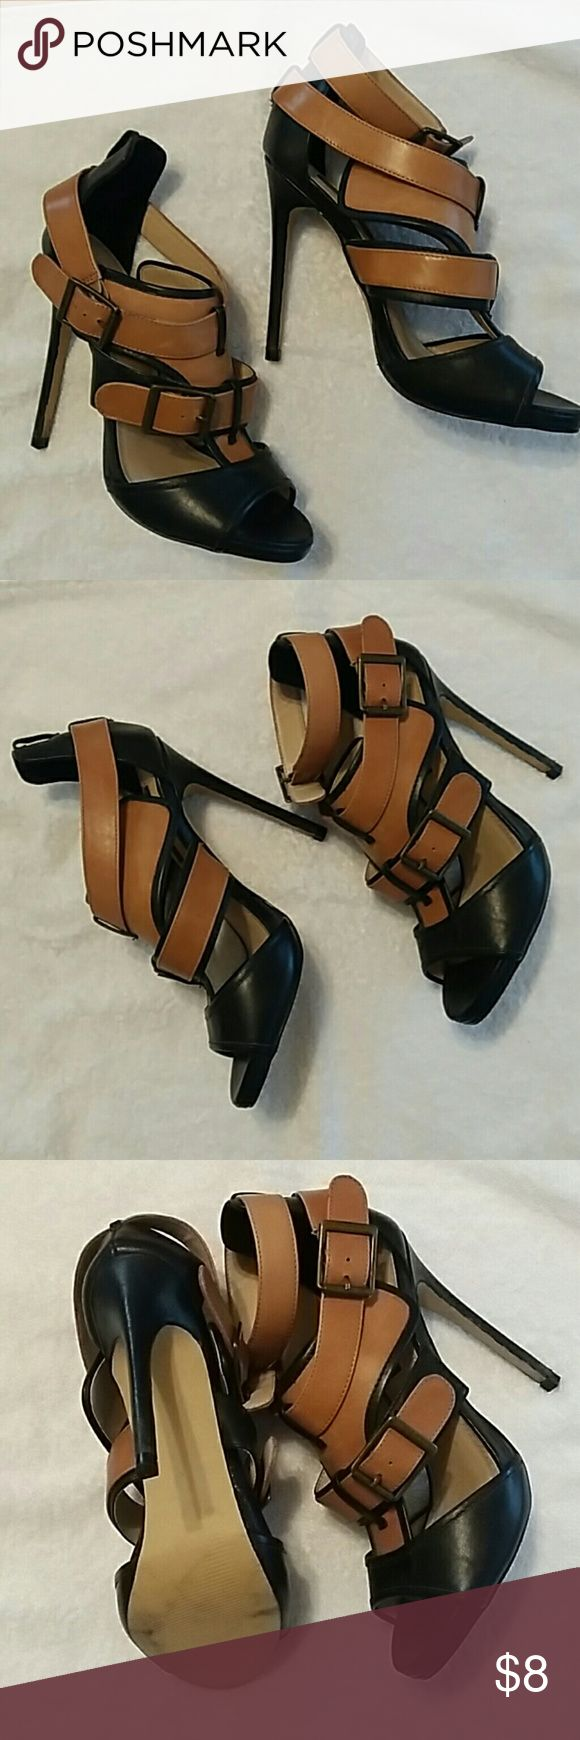 Shoemint Brenda Black Cognac Leather Heels Shoemint brenda two tone strappy leathere stiletto heels light platform sole - Worn Once - No wear to sole or heel - Nearly New - msrp $115 - RIGHT SHOE IS MISSING UPPER ANKLE STRAP - you can swap them out for ribbon, have one made or wear without - otherwise shoes are mint Shoemint Shoes Sandals